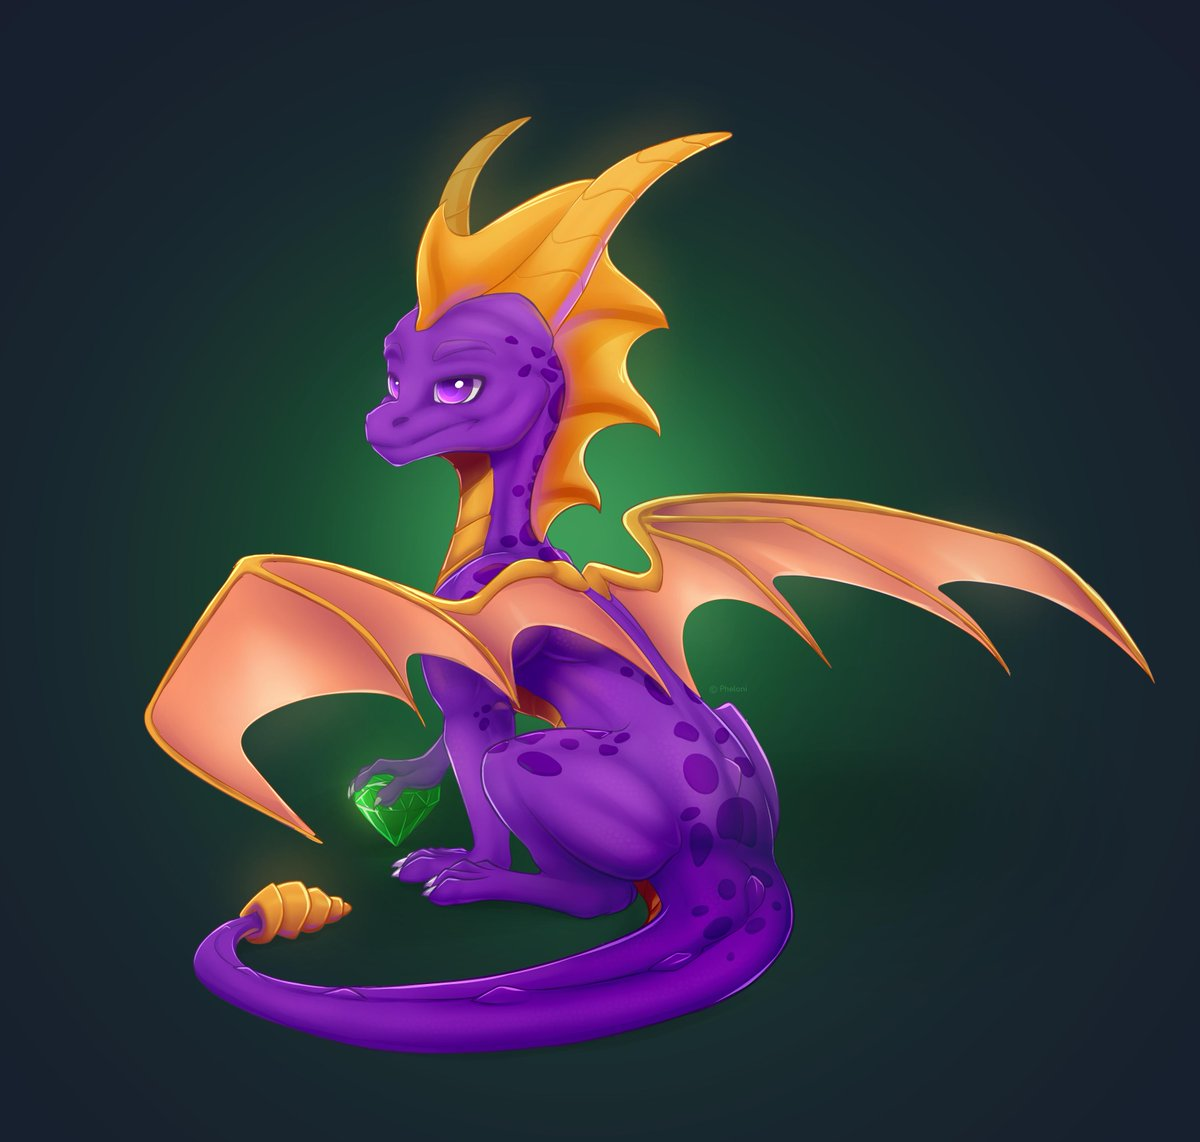 Attention dragon lovers   I'm opening a free raffle! All you need is: 1. Follow me  2. Like this tweet  3. Retweet this tweet  You have a chance to get a free artwork of your dragon in style on pics below I will pick a winner with randomizer #freeraffle #freeart #spyro<br>http://pic.twitter.com/Qtlq9xkWUR